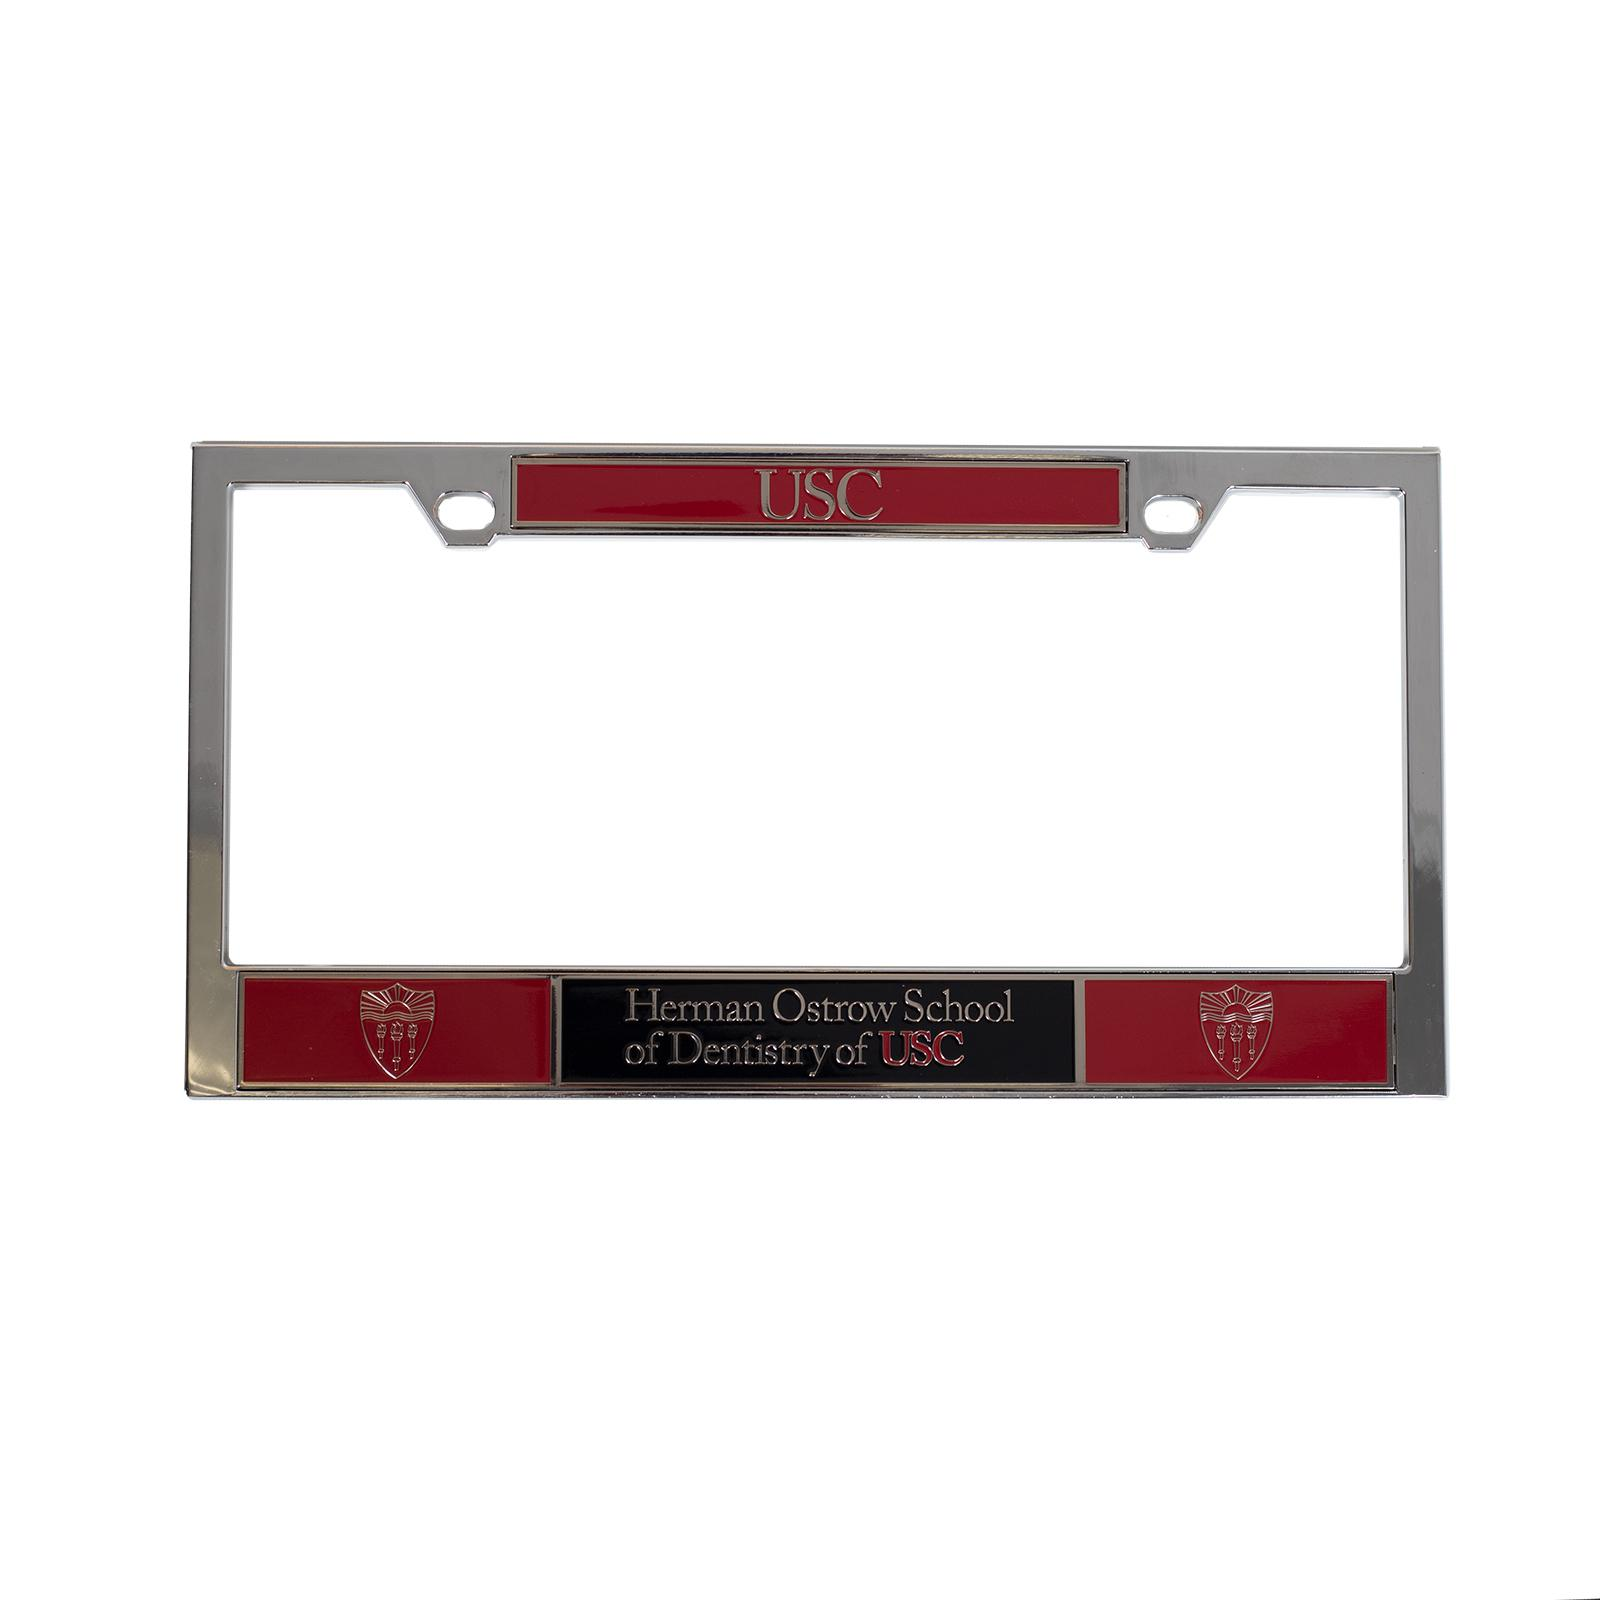 Usc Herman Ostrow Dentistry License Plate Frame